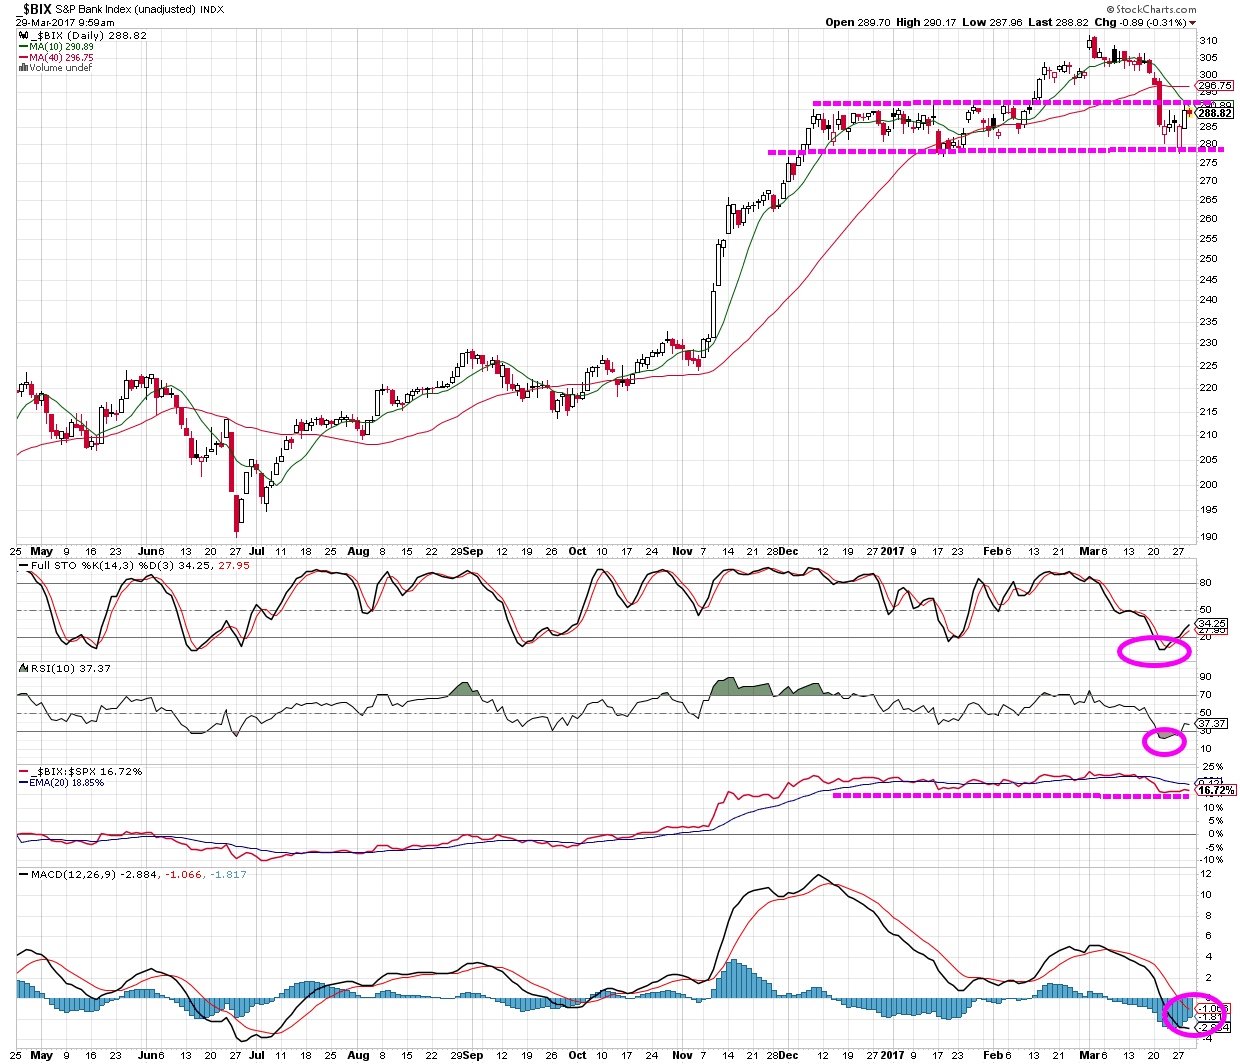 US Banks $BIX S&P index: technical chart analysis of potential successful trade, RSI, Stochastics, MACD, moving averages